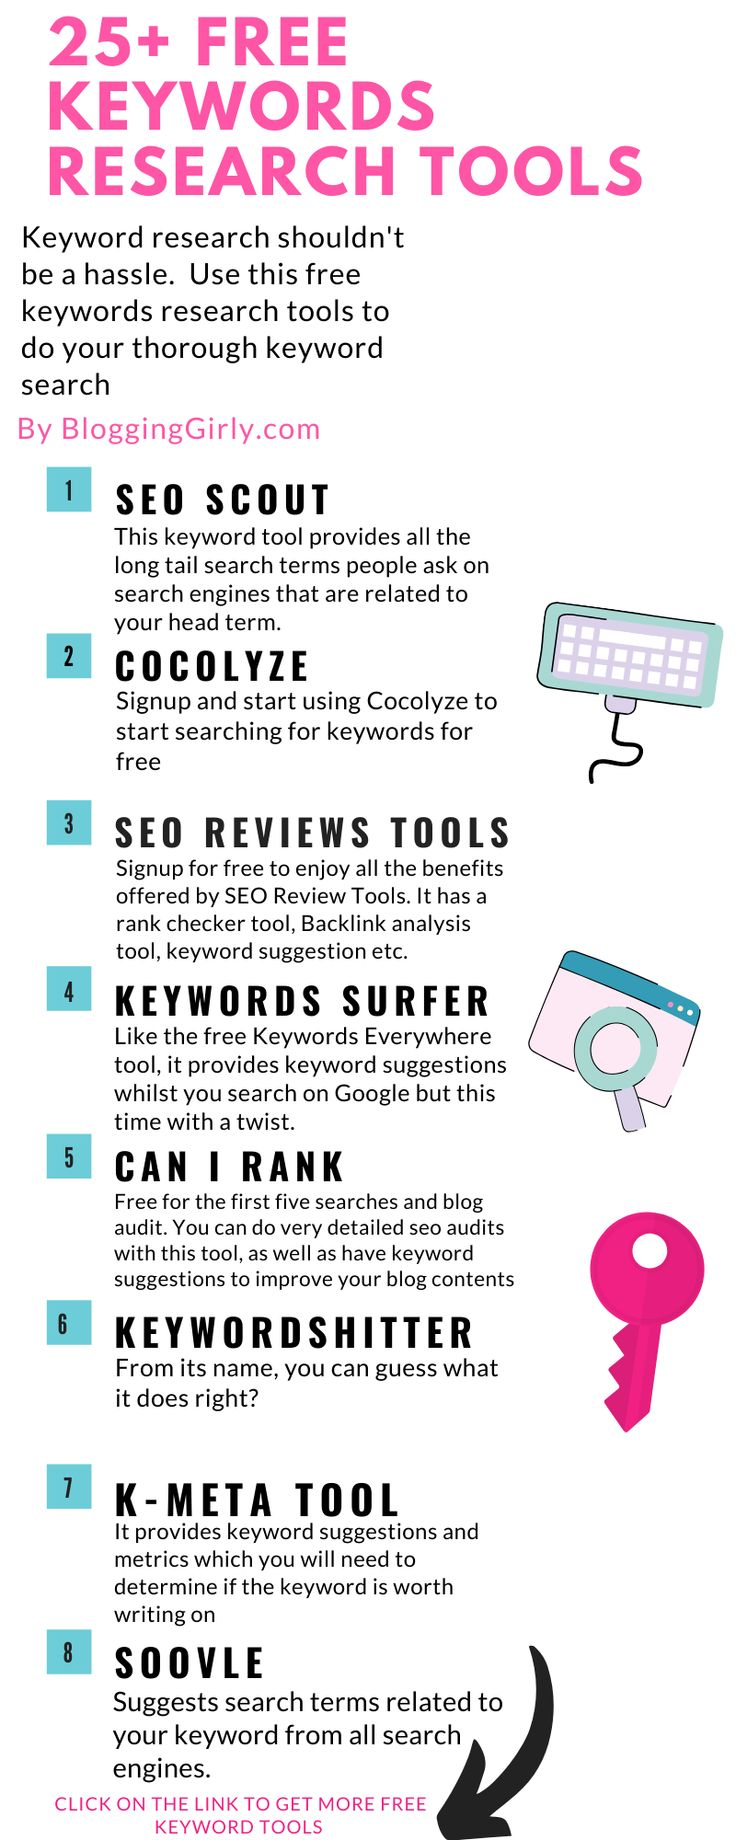 This Is A List Of Free Keywords Research Tools For Bloggers To Do Easy Keywords Research Seo Seo In 2020 Blogging For Beginners Free Keyword Tool Boost Blog Traffic